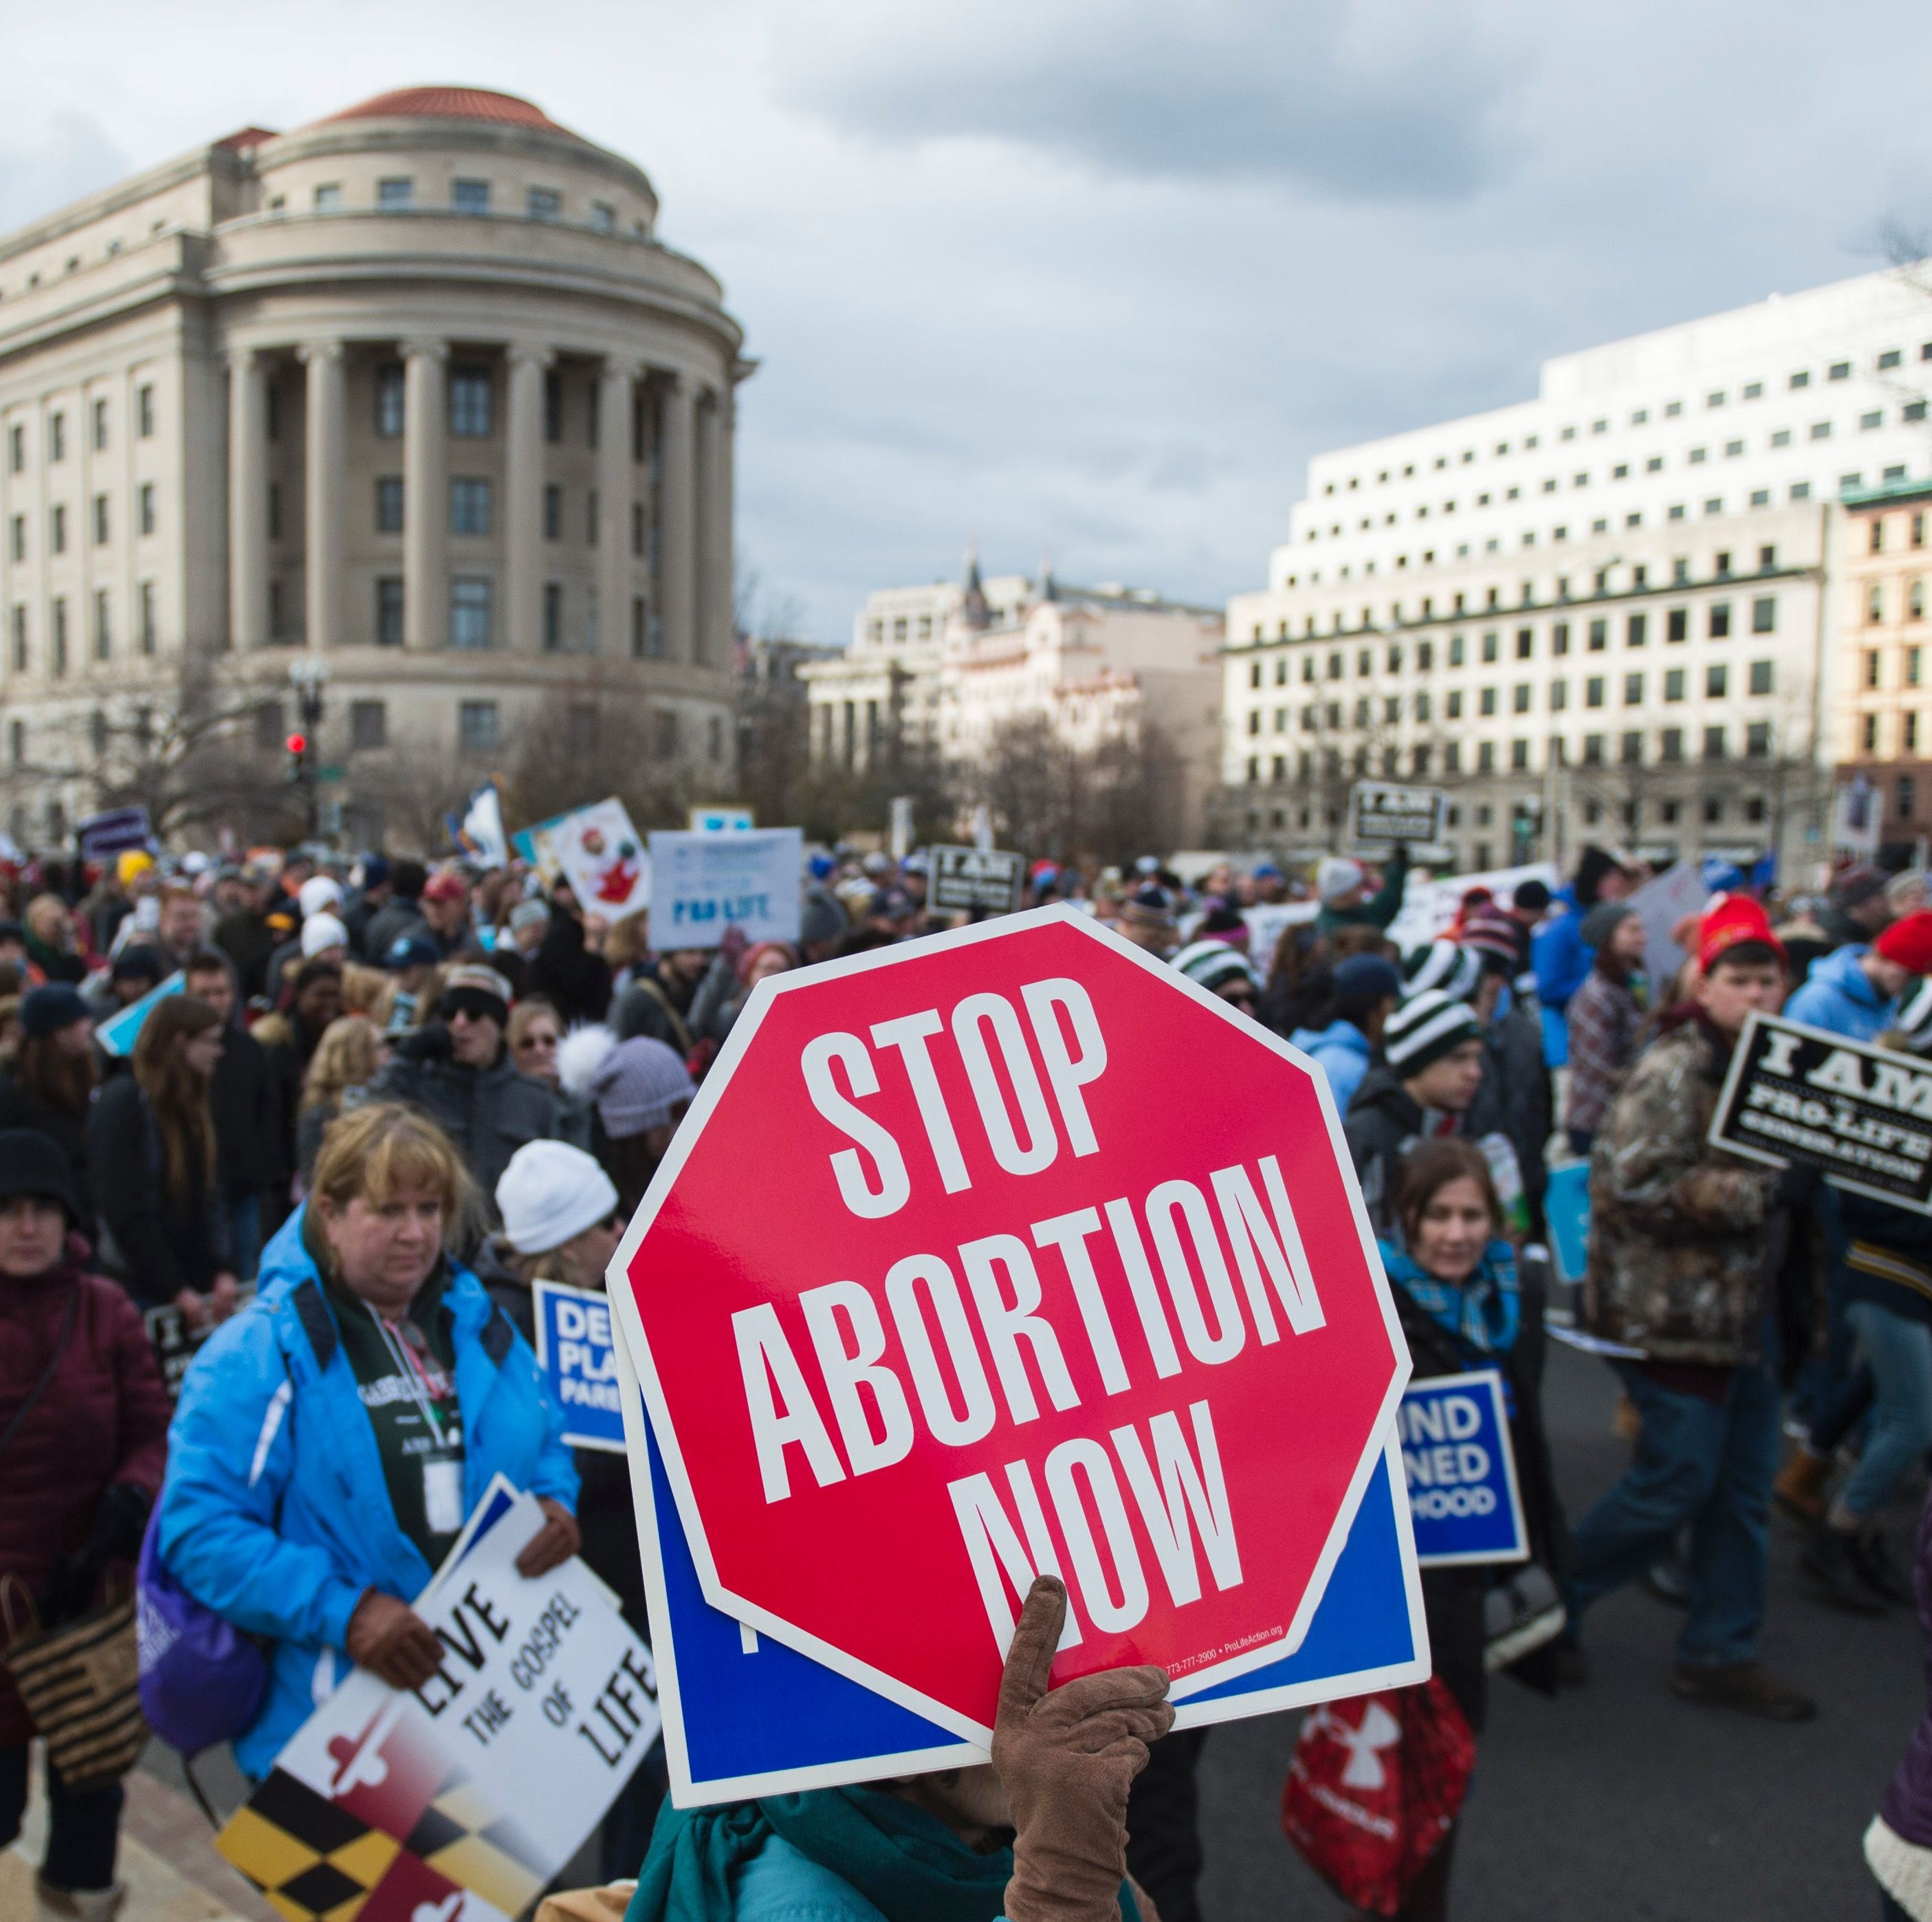 March for Life: Science has changed since Roe v. Wade, now abortion laws must change